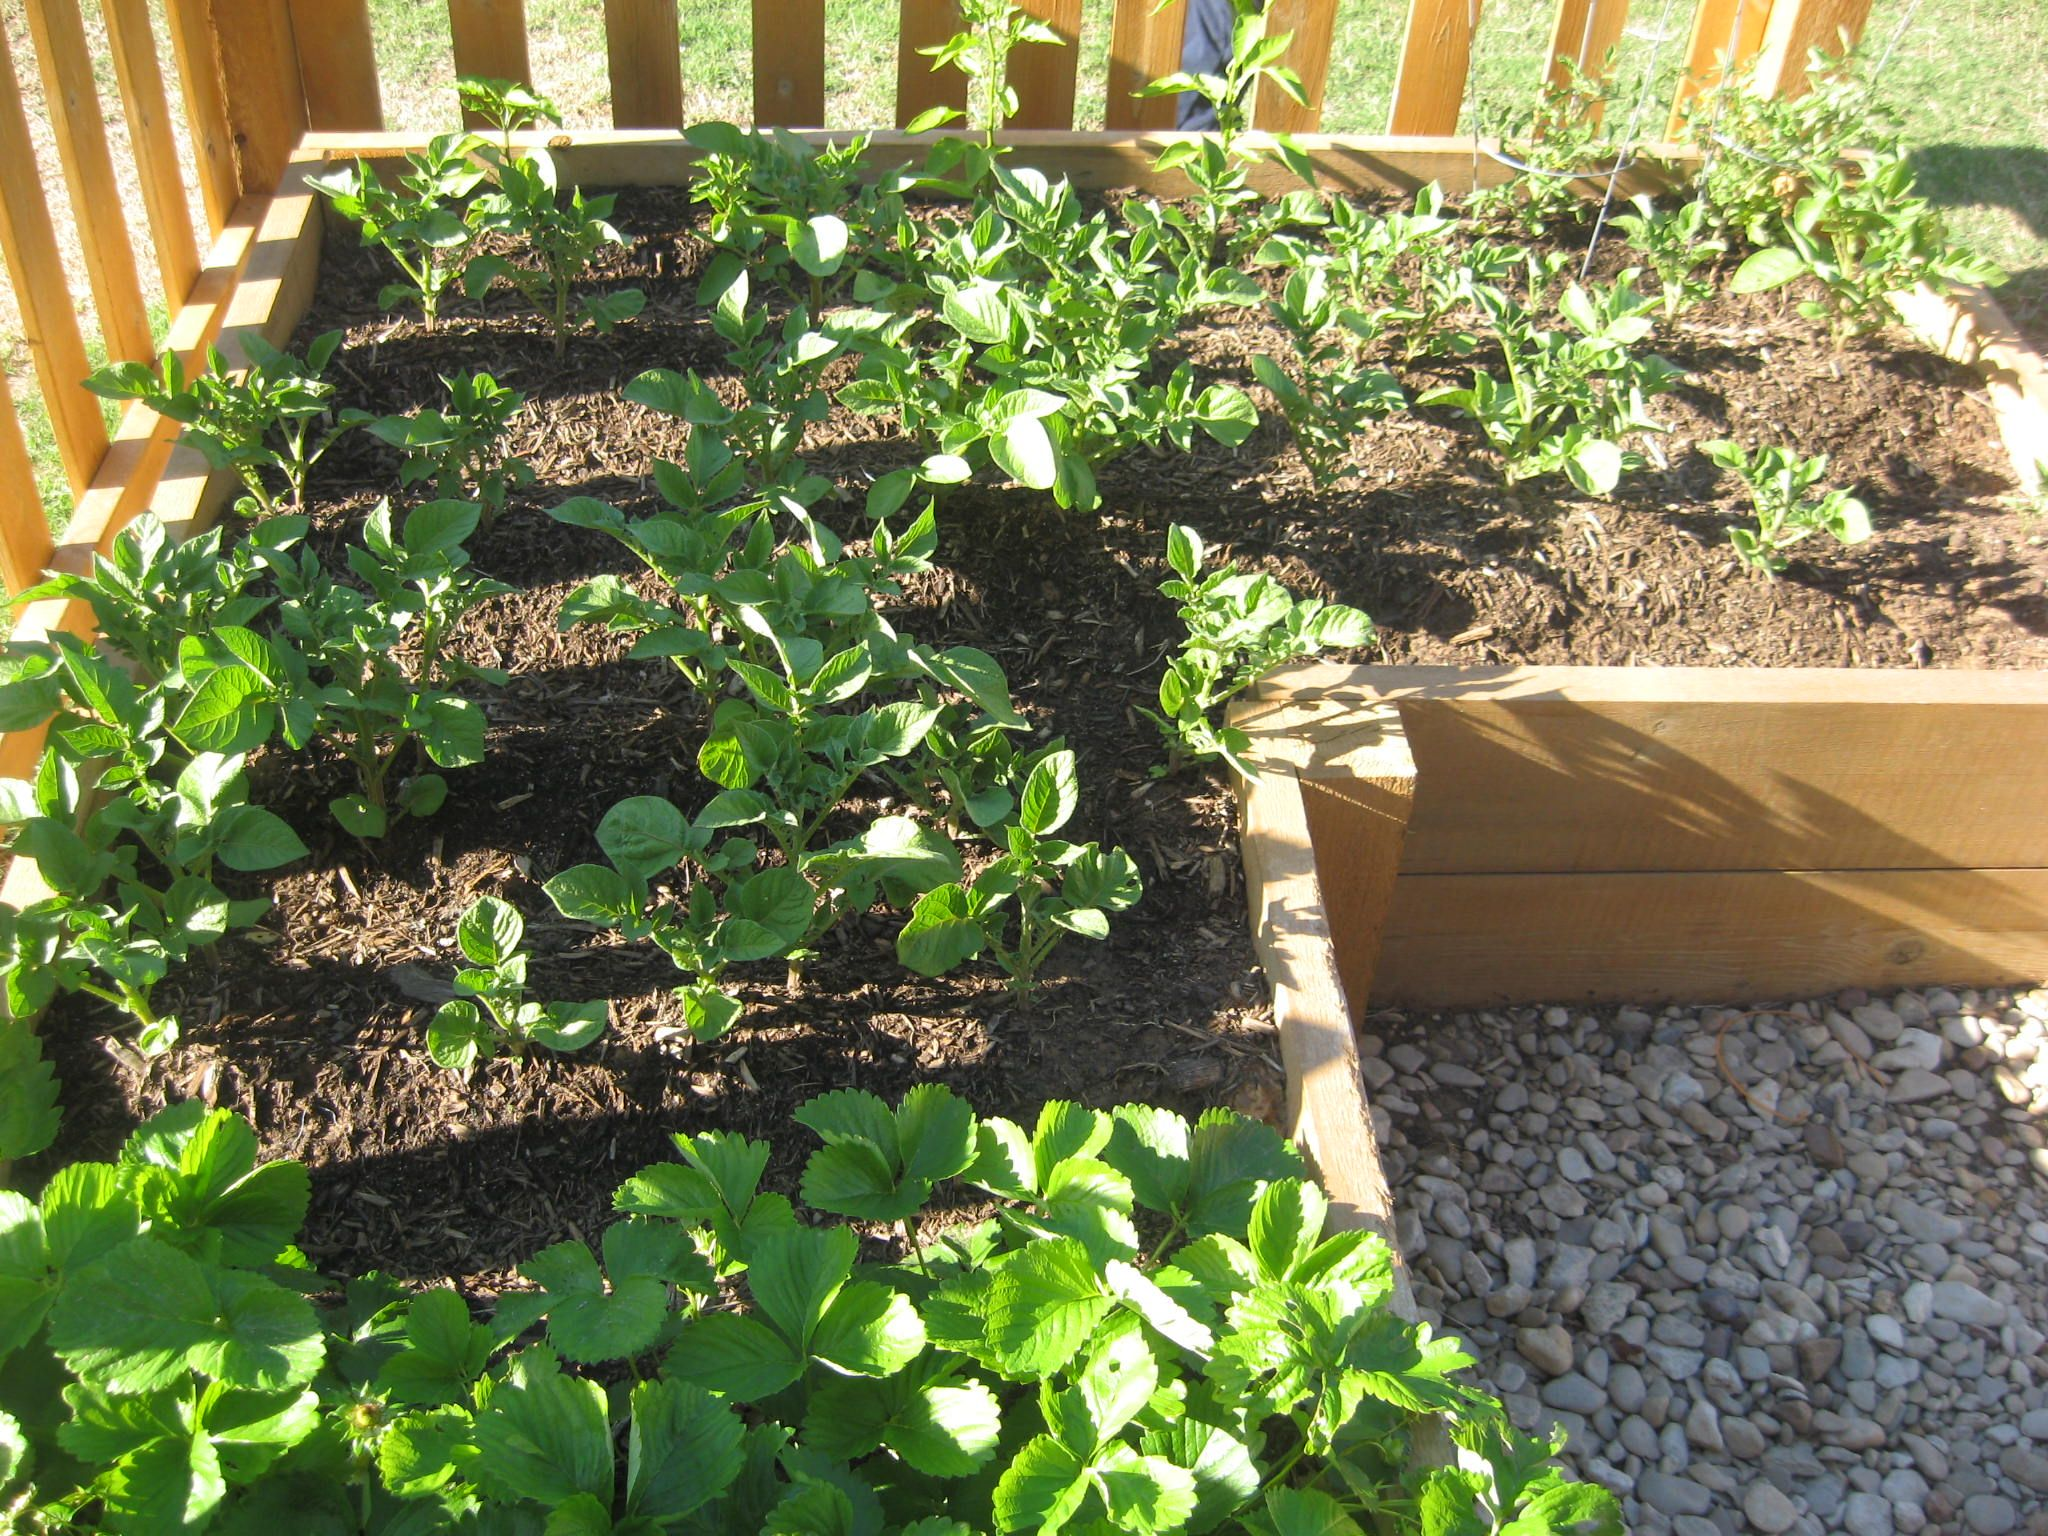 Veggie garden ideas on a budget vegetable gardening for Gardening tips